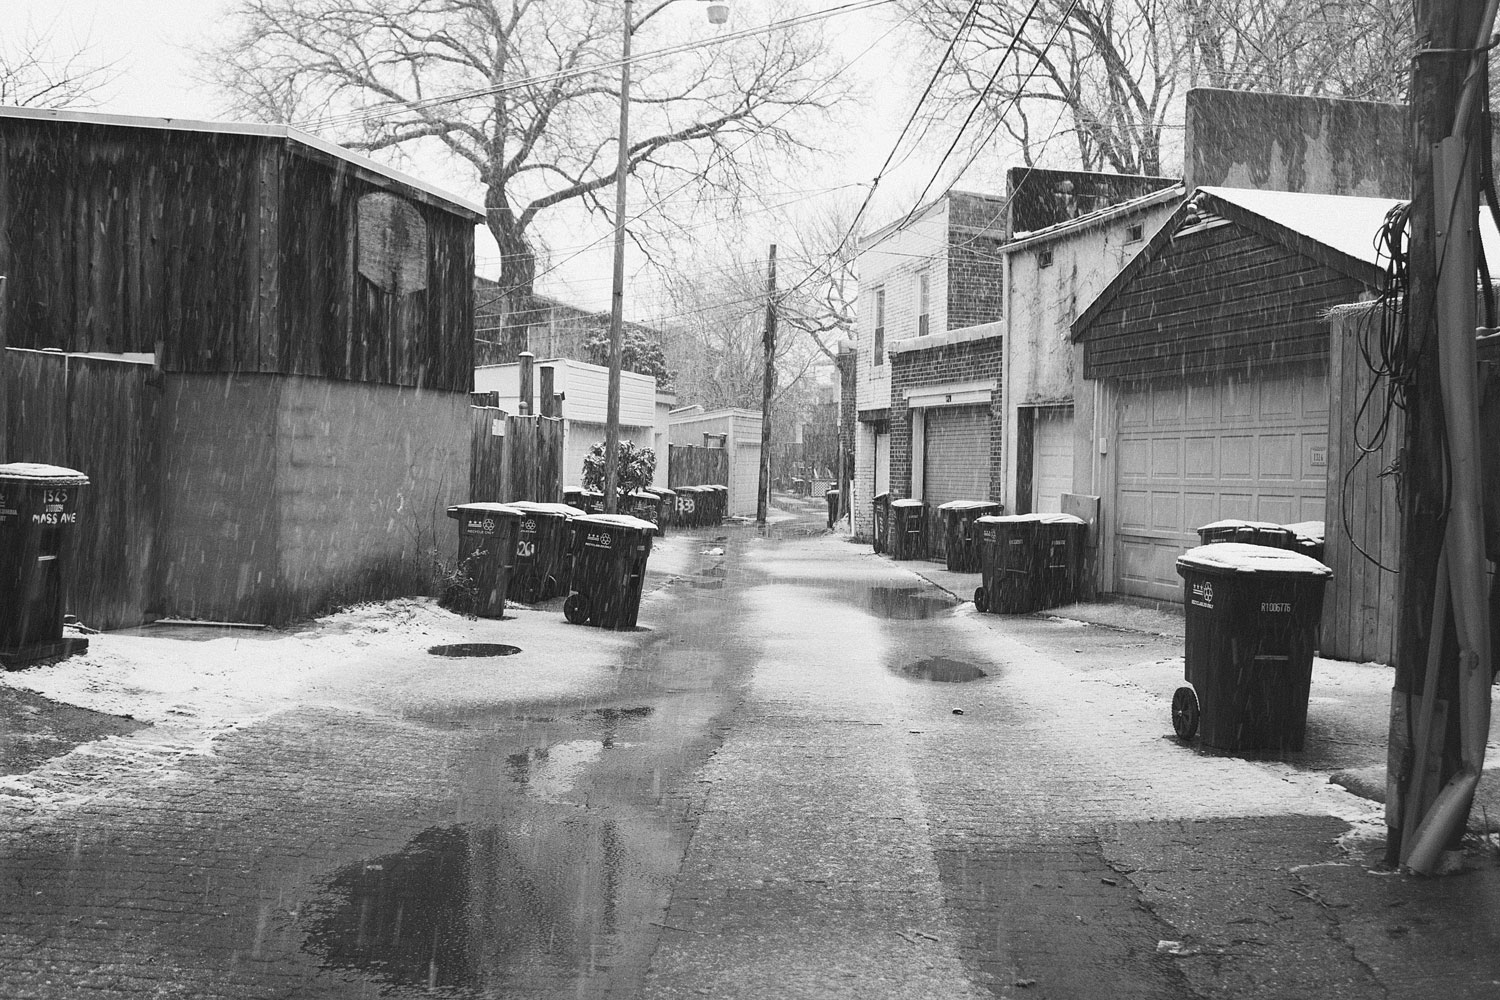 021918-Capitol-Hill-DC-Alley.jpg